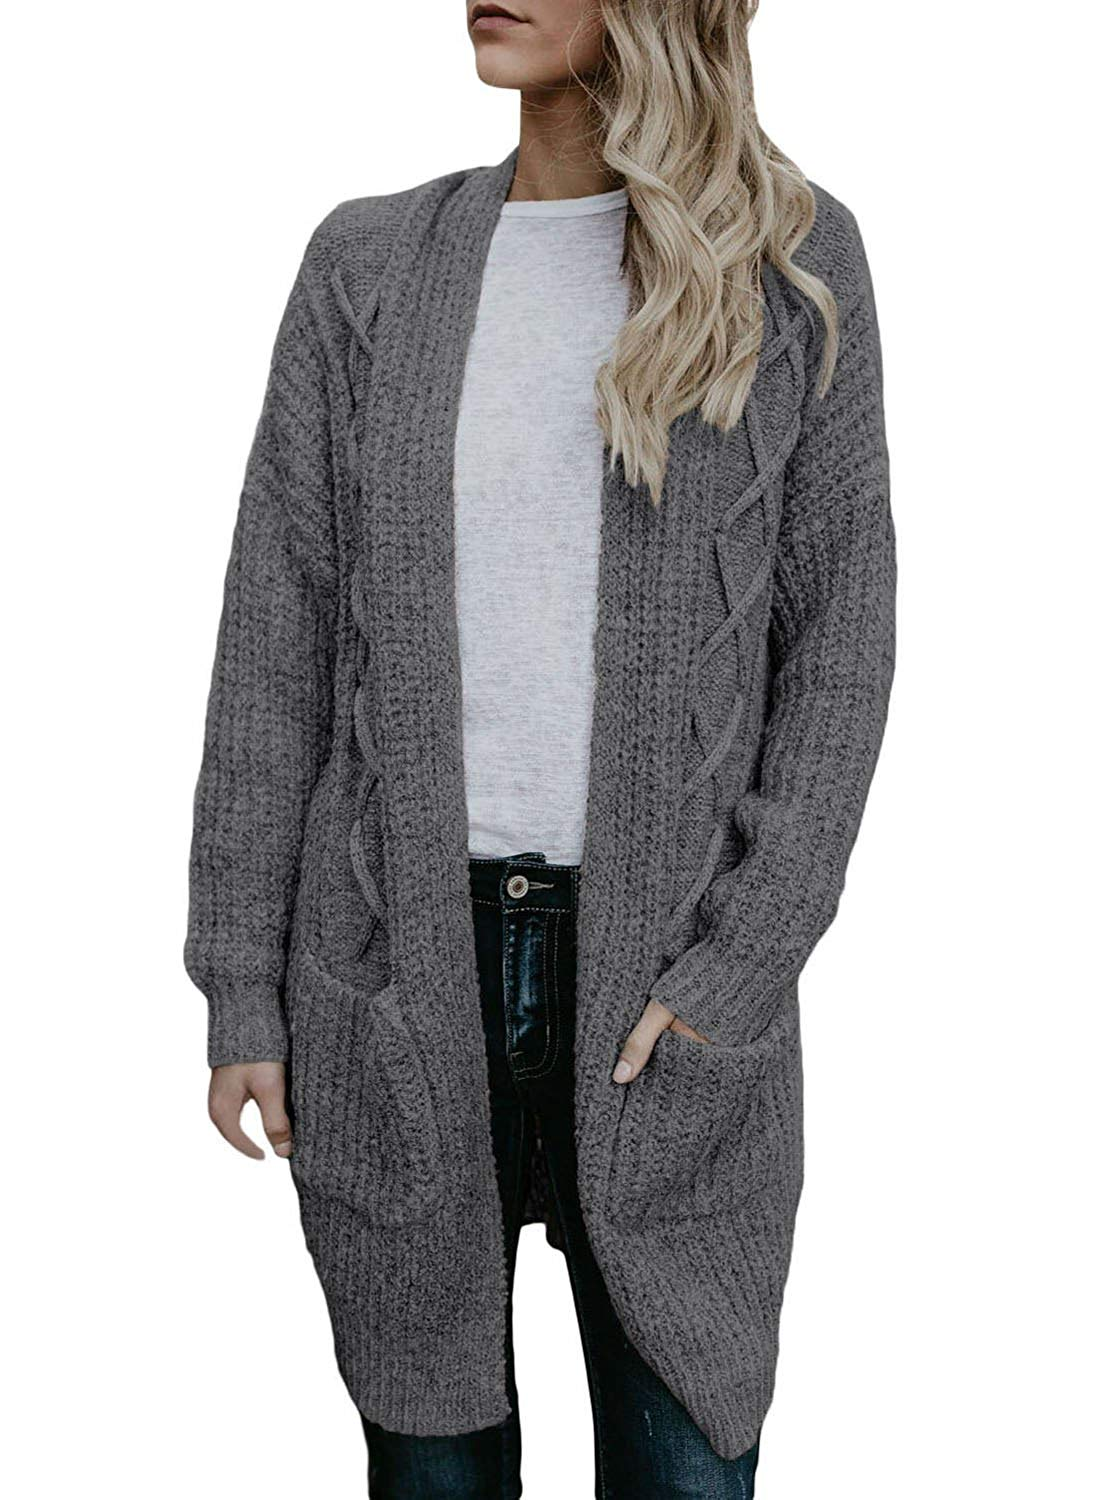 0783896c46 Get Quotations · Heymiss Womens Cardigan Open Front Chunky Cable Knit  Sweater with Pockets